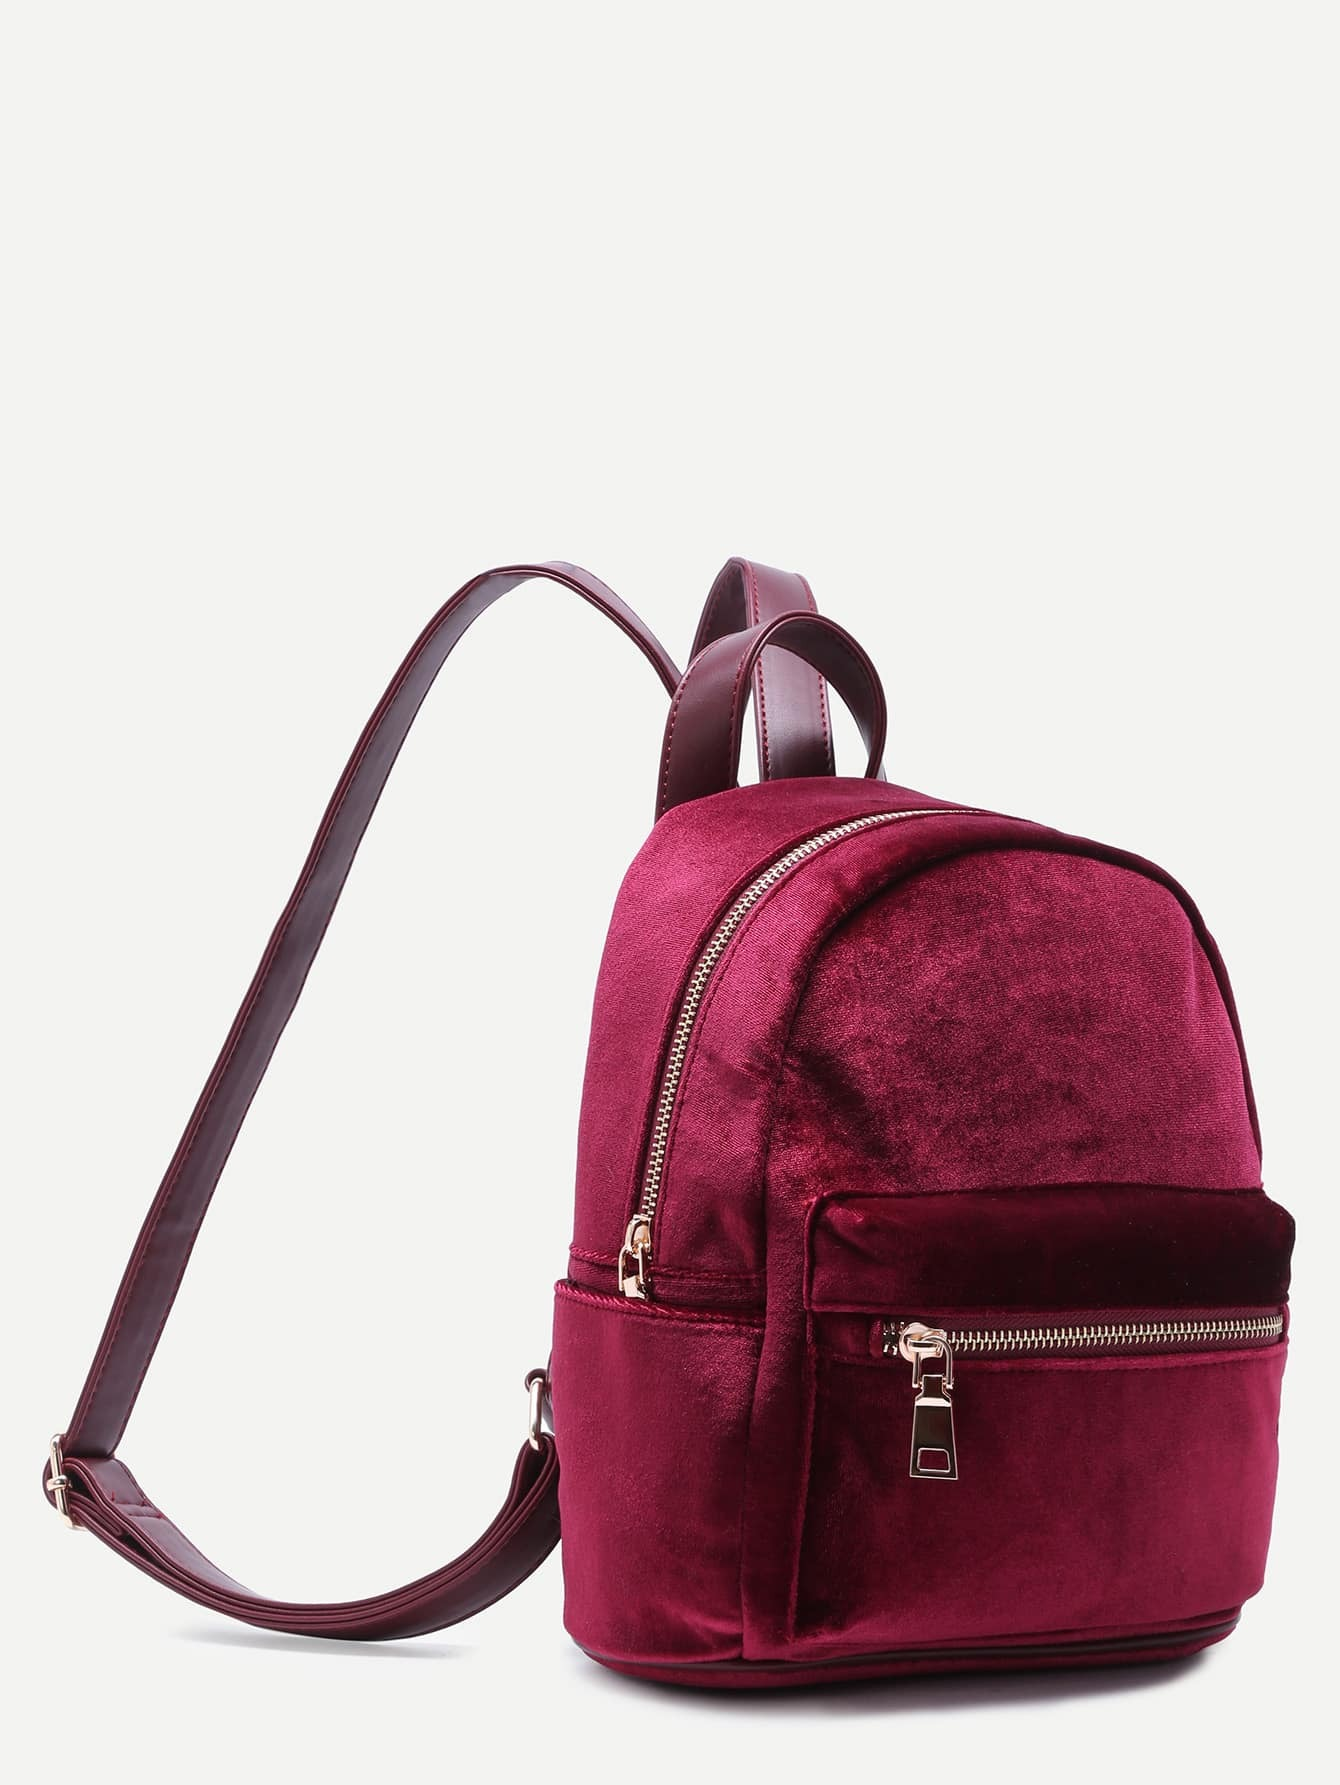 Carry the weight of the world in one of our Burgundy backpacks! Thousands of amazing designs mean thousands of amazing backpack options. Shop now!